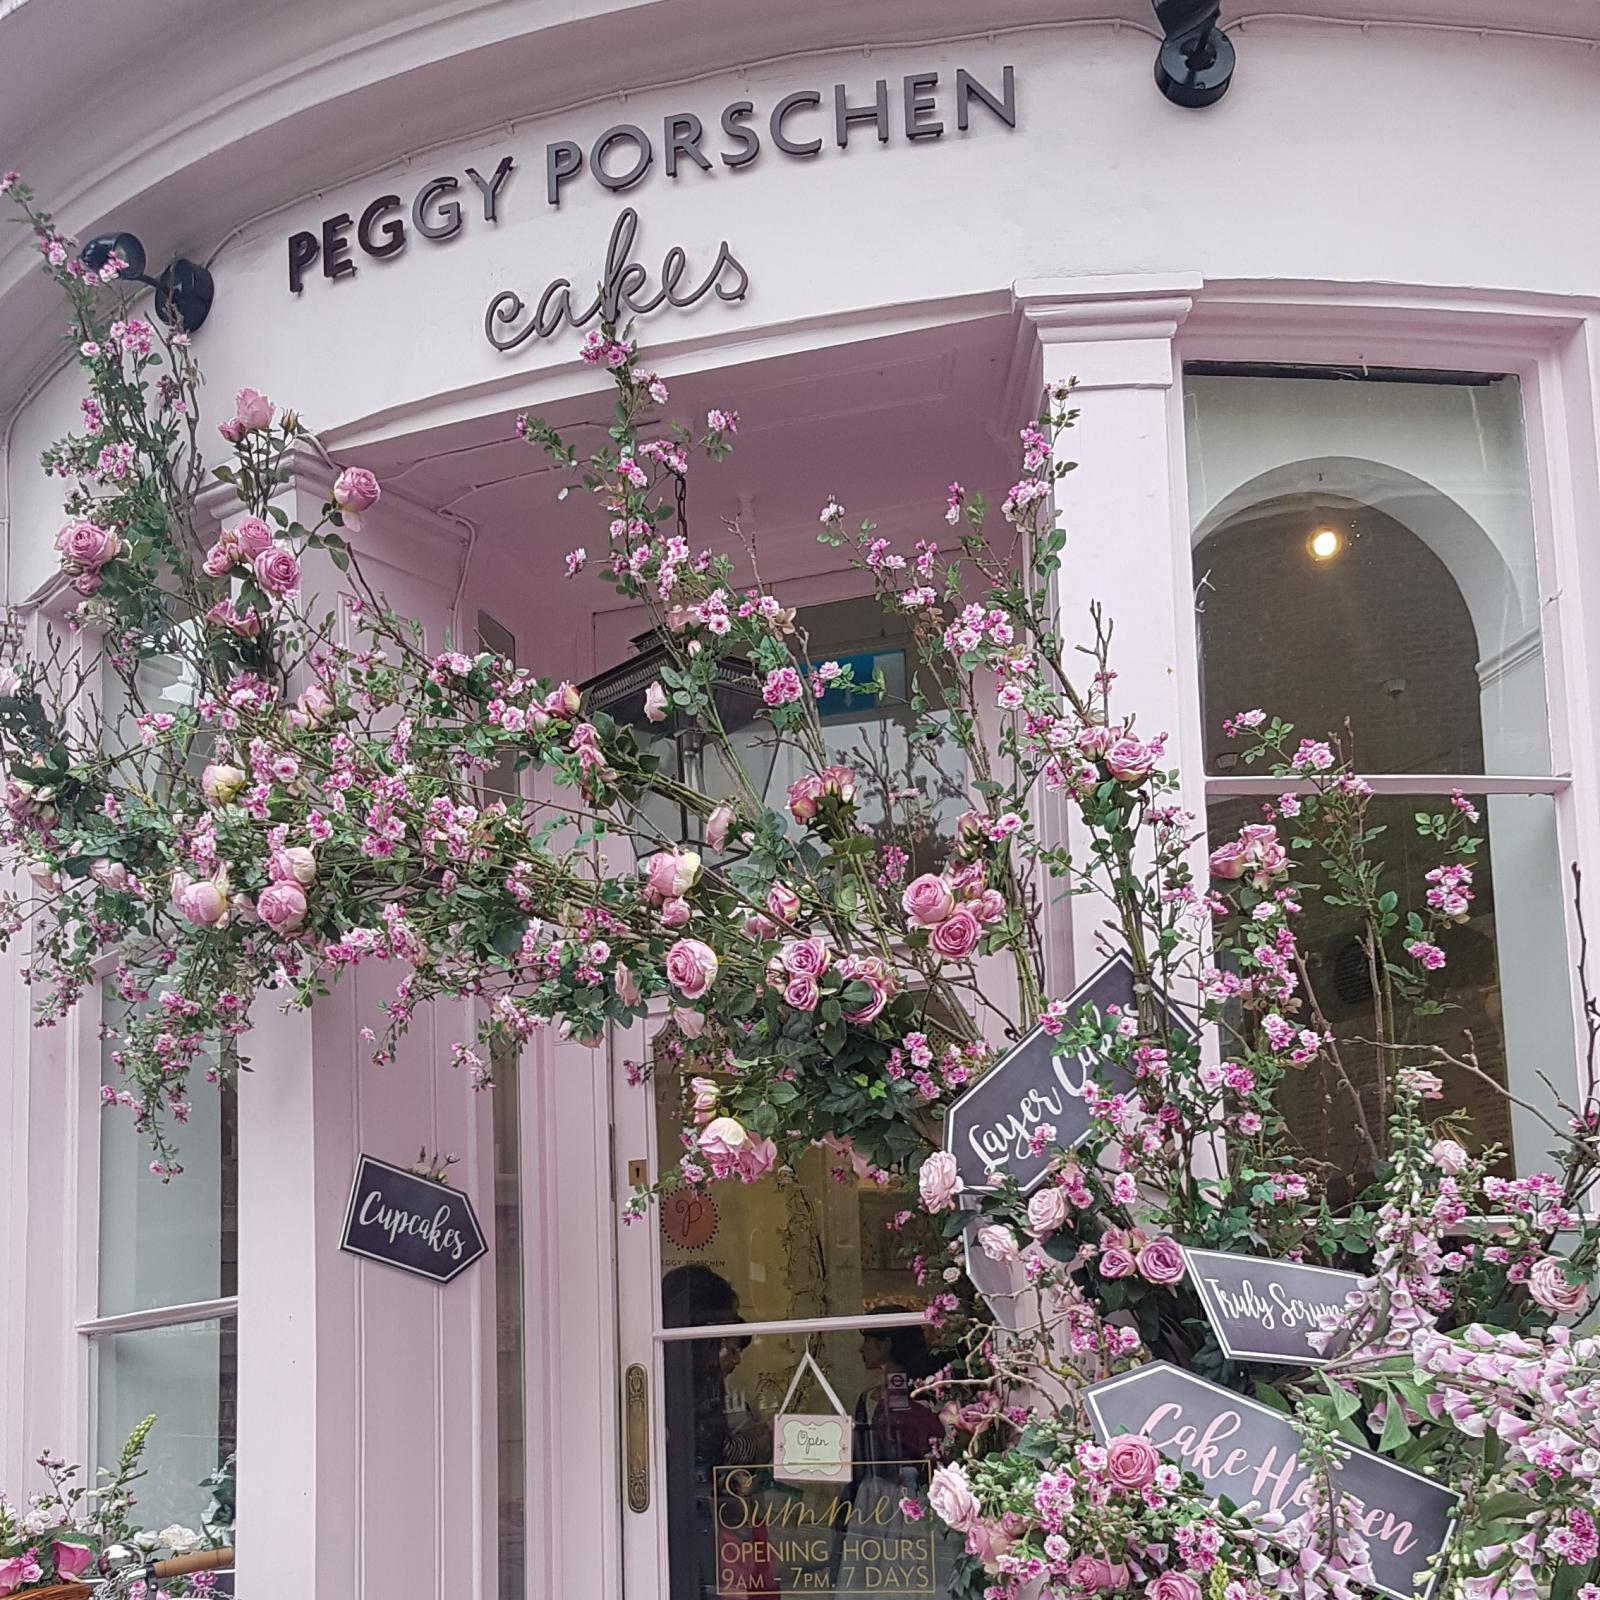 Peggy Porschen Cakes London